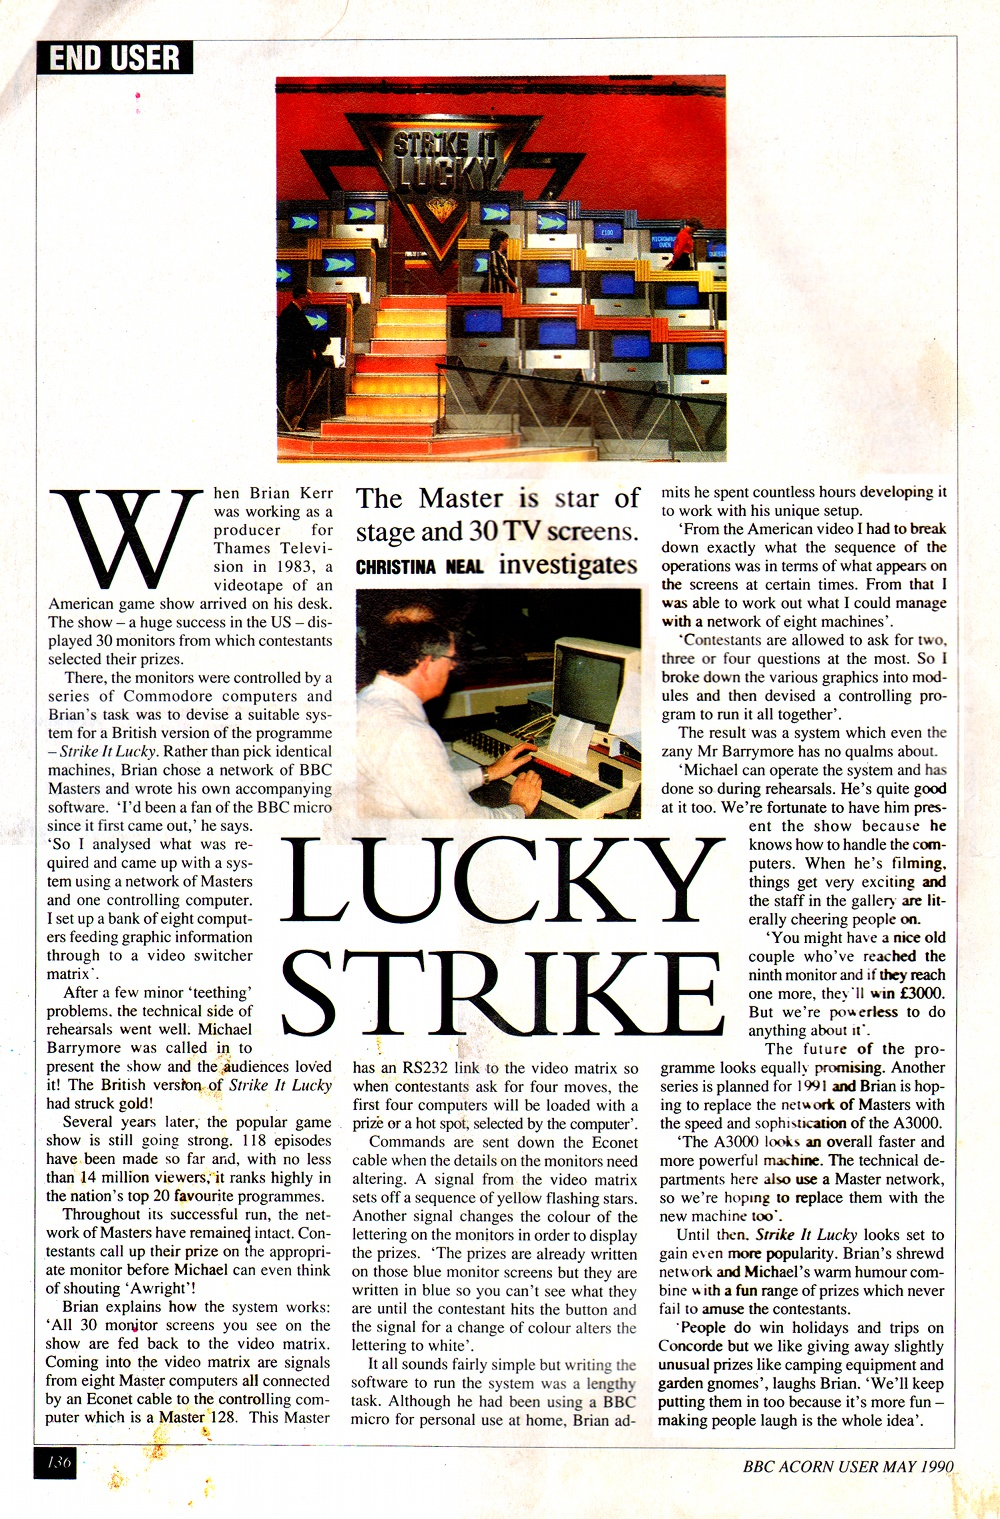 Acorn User Strike It Lucky article